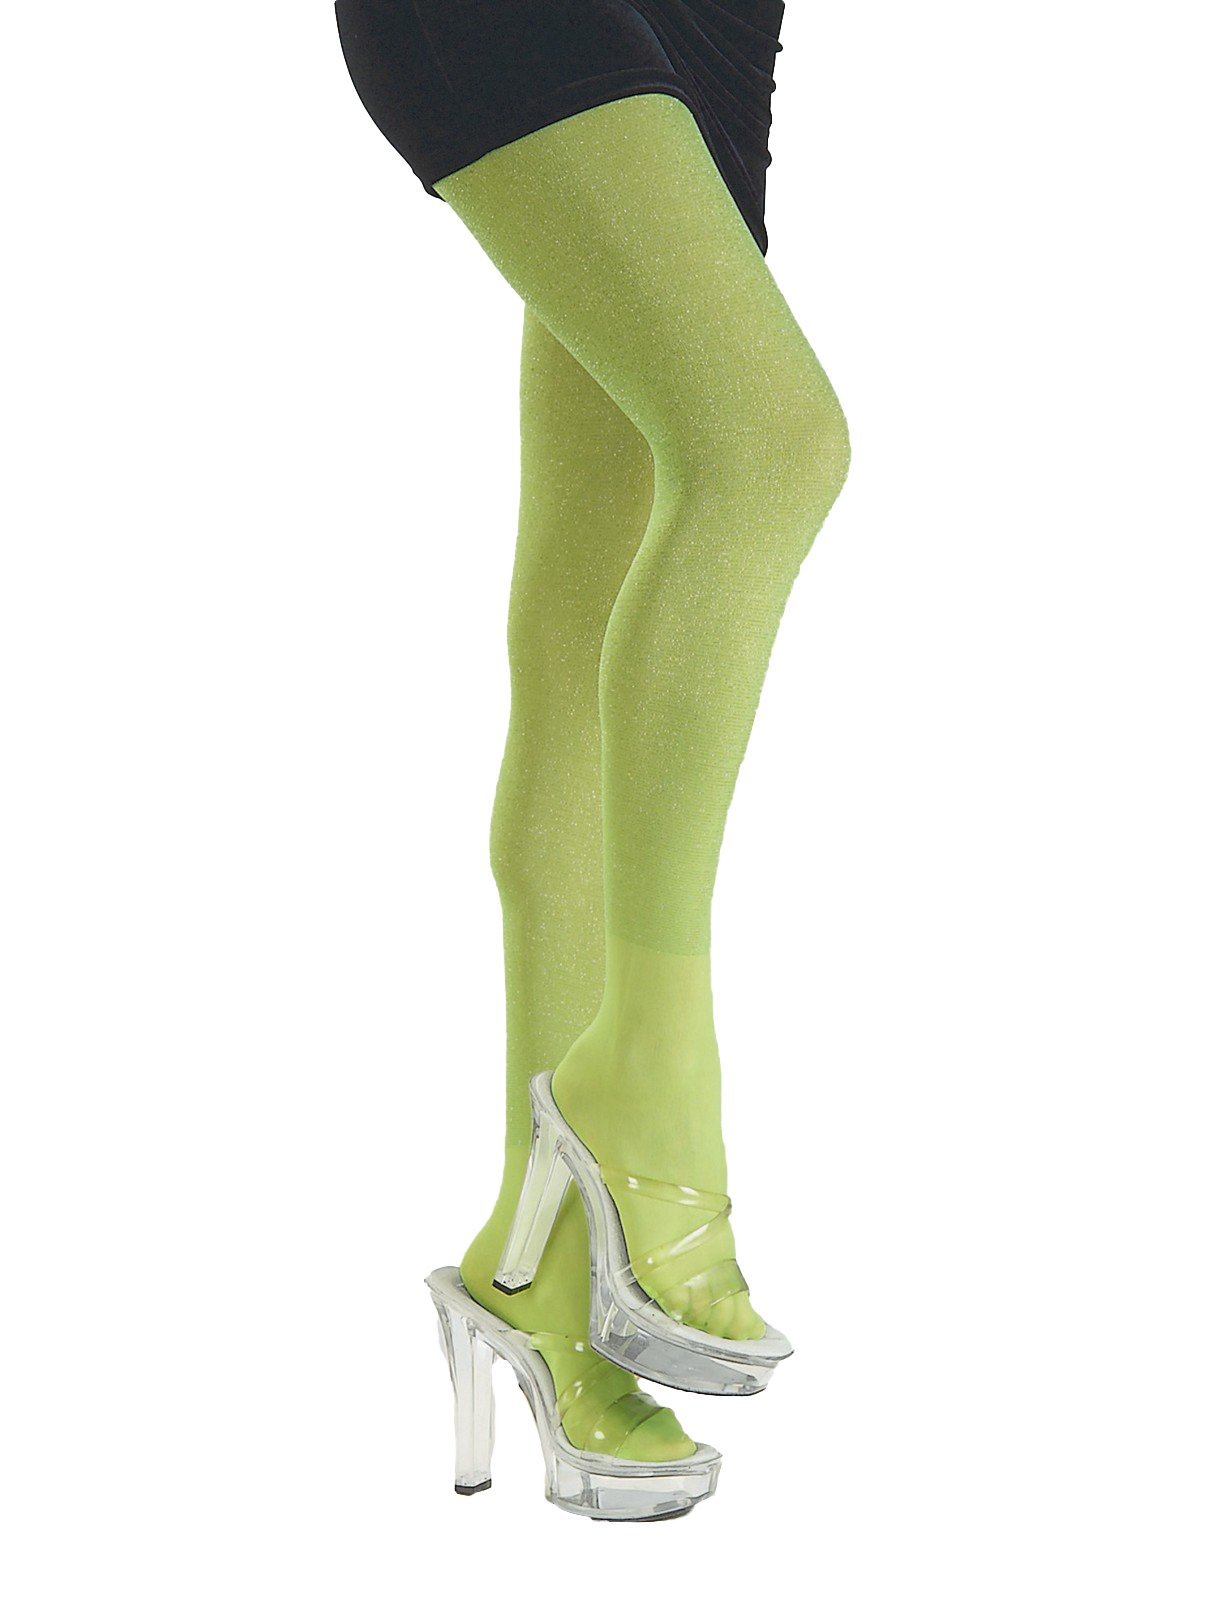 9ca77621e83 Amazon.com  Rubie s Lime Green Glitter Tights Costume Accessory Adult Std.  (Single Pack) 6825  Toys   Games